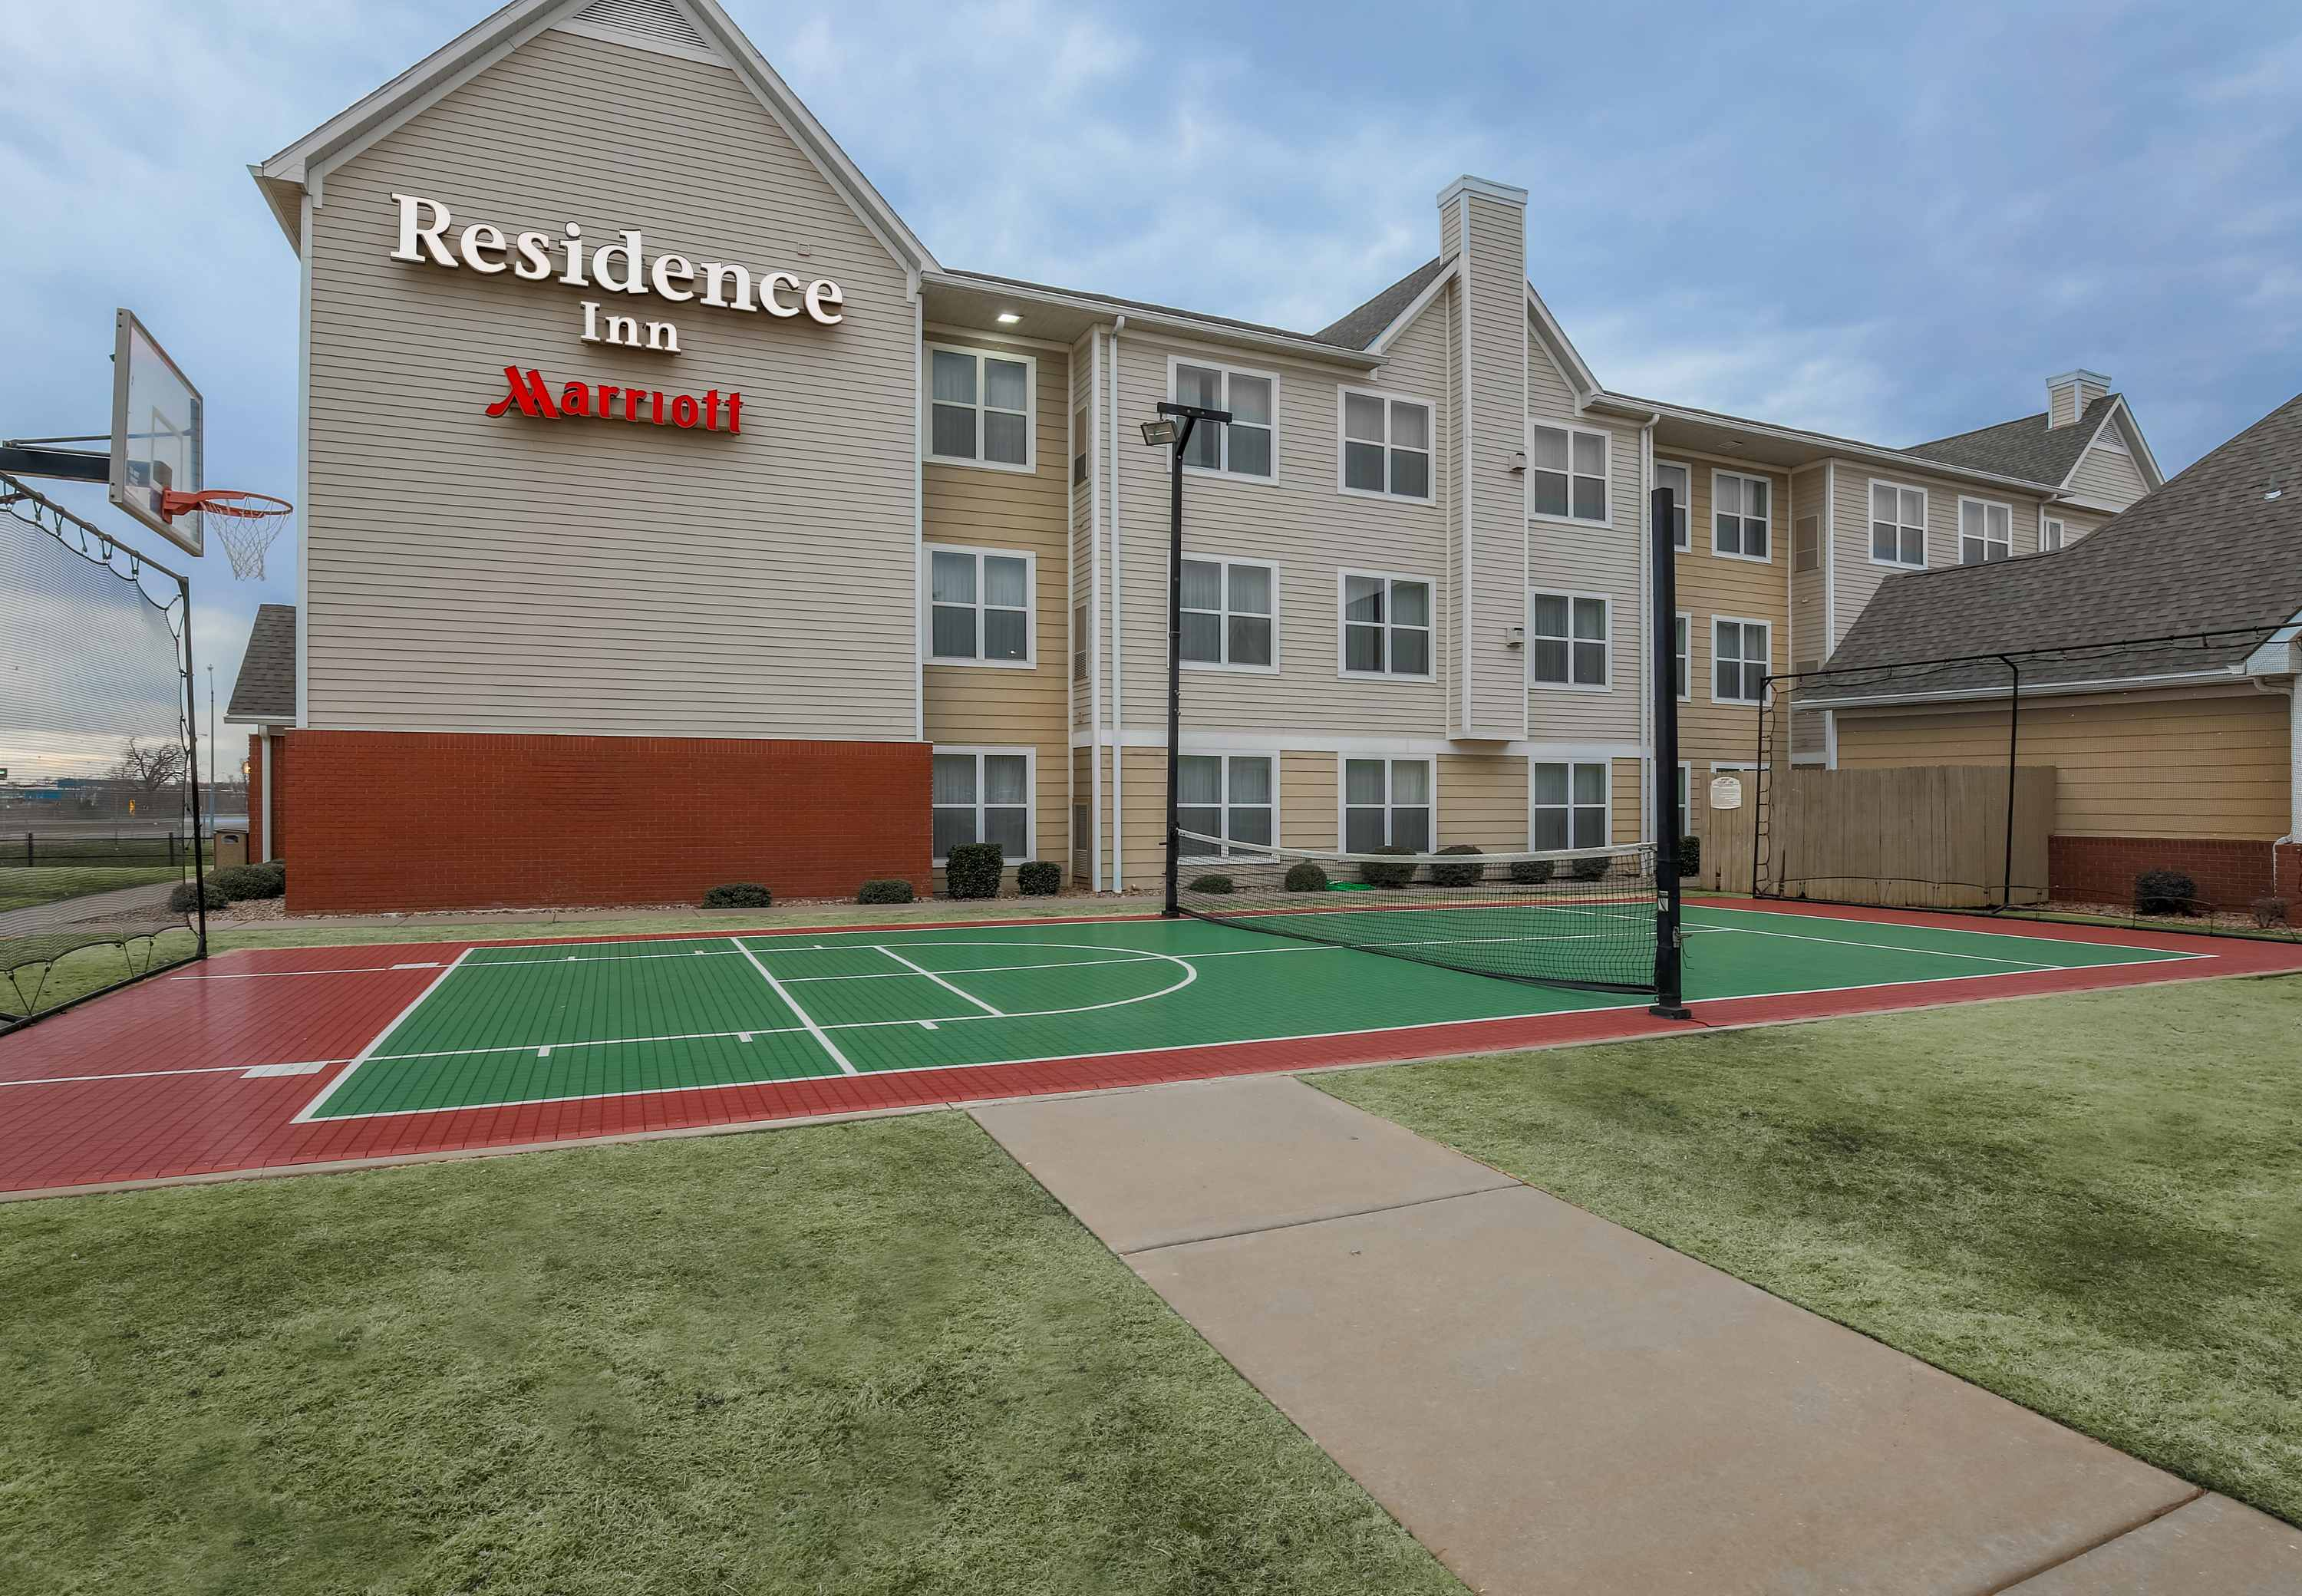 Residence Inn by Marriott Oklahoma City South image 14